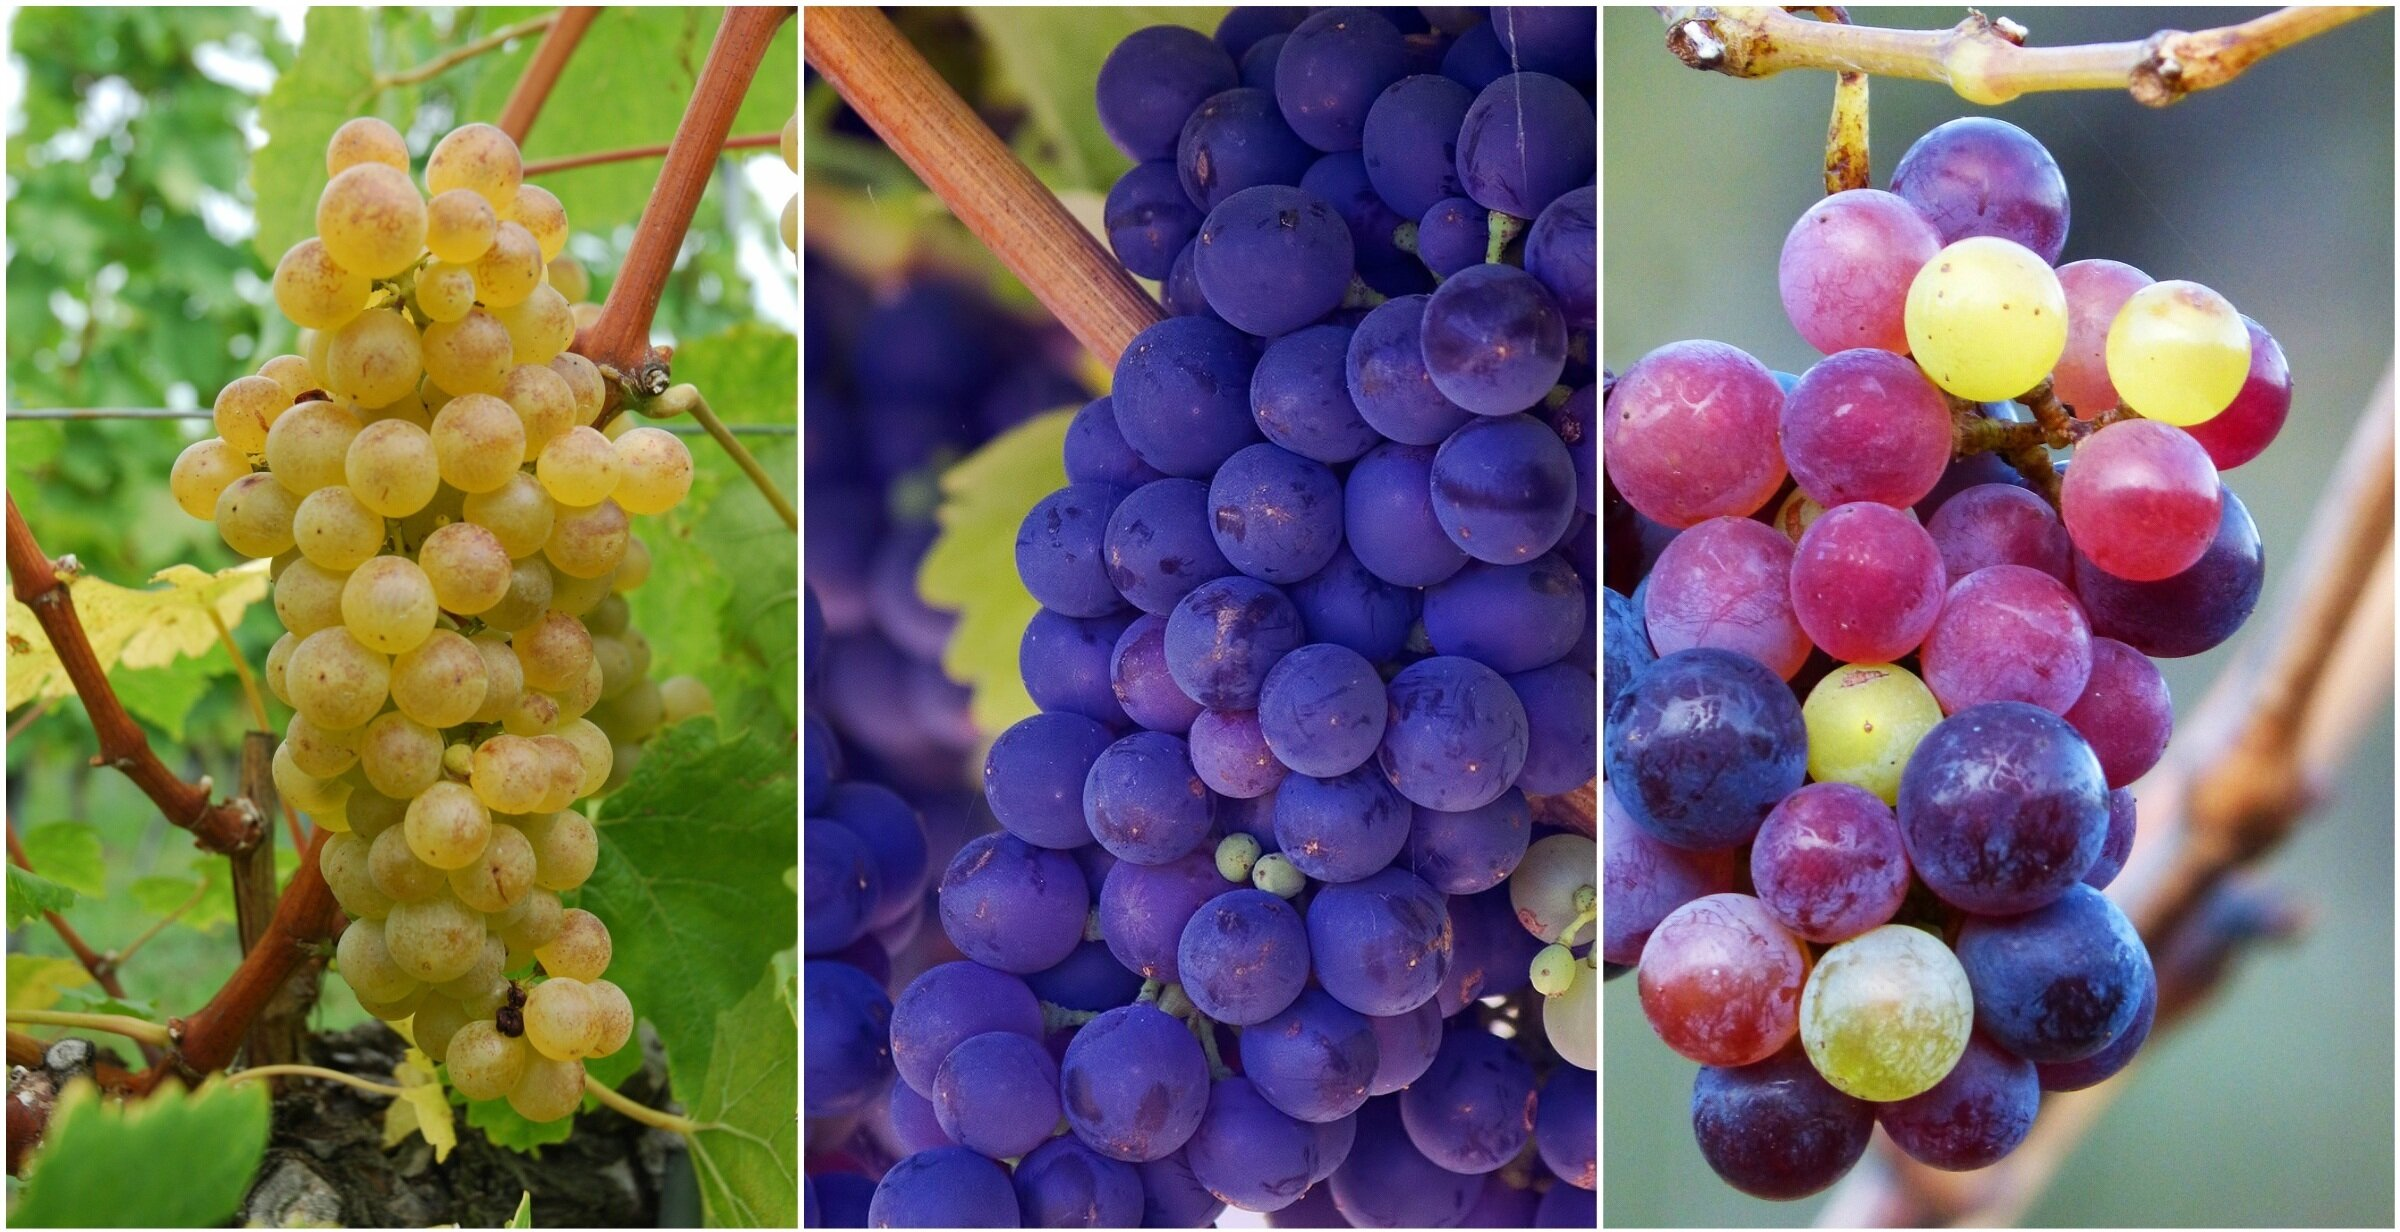 If you like this wine, try that one! Alternative varieties to explore